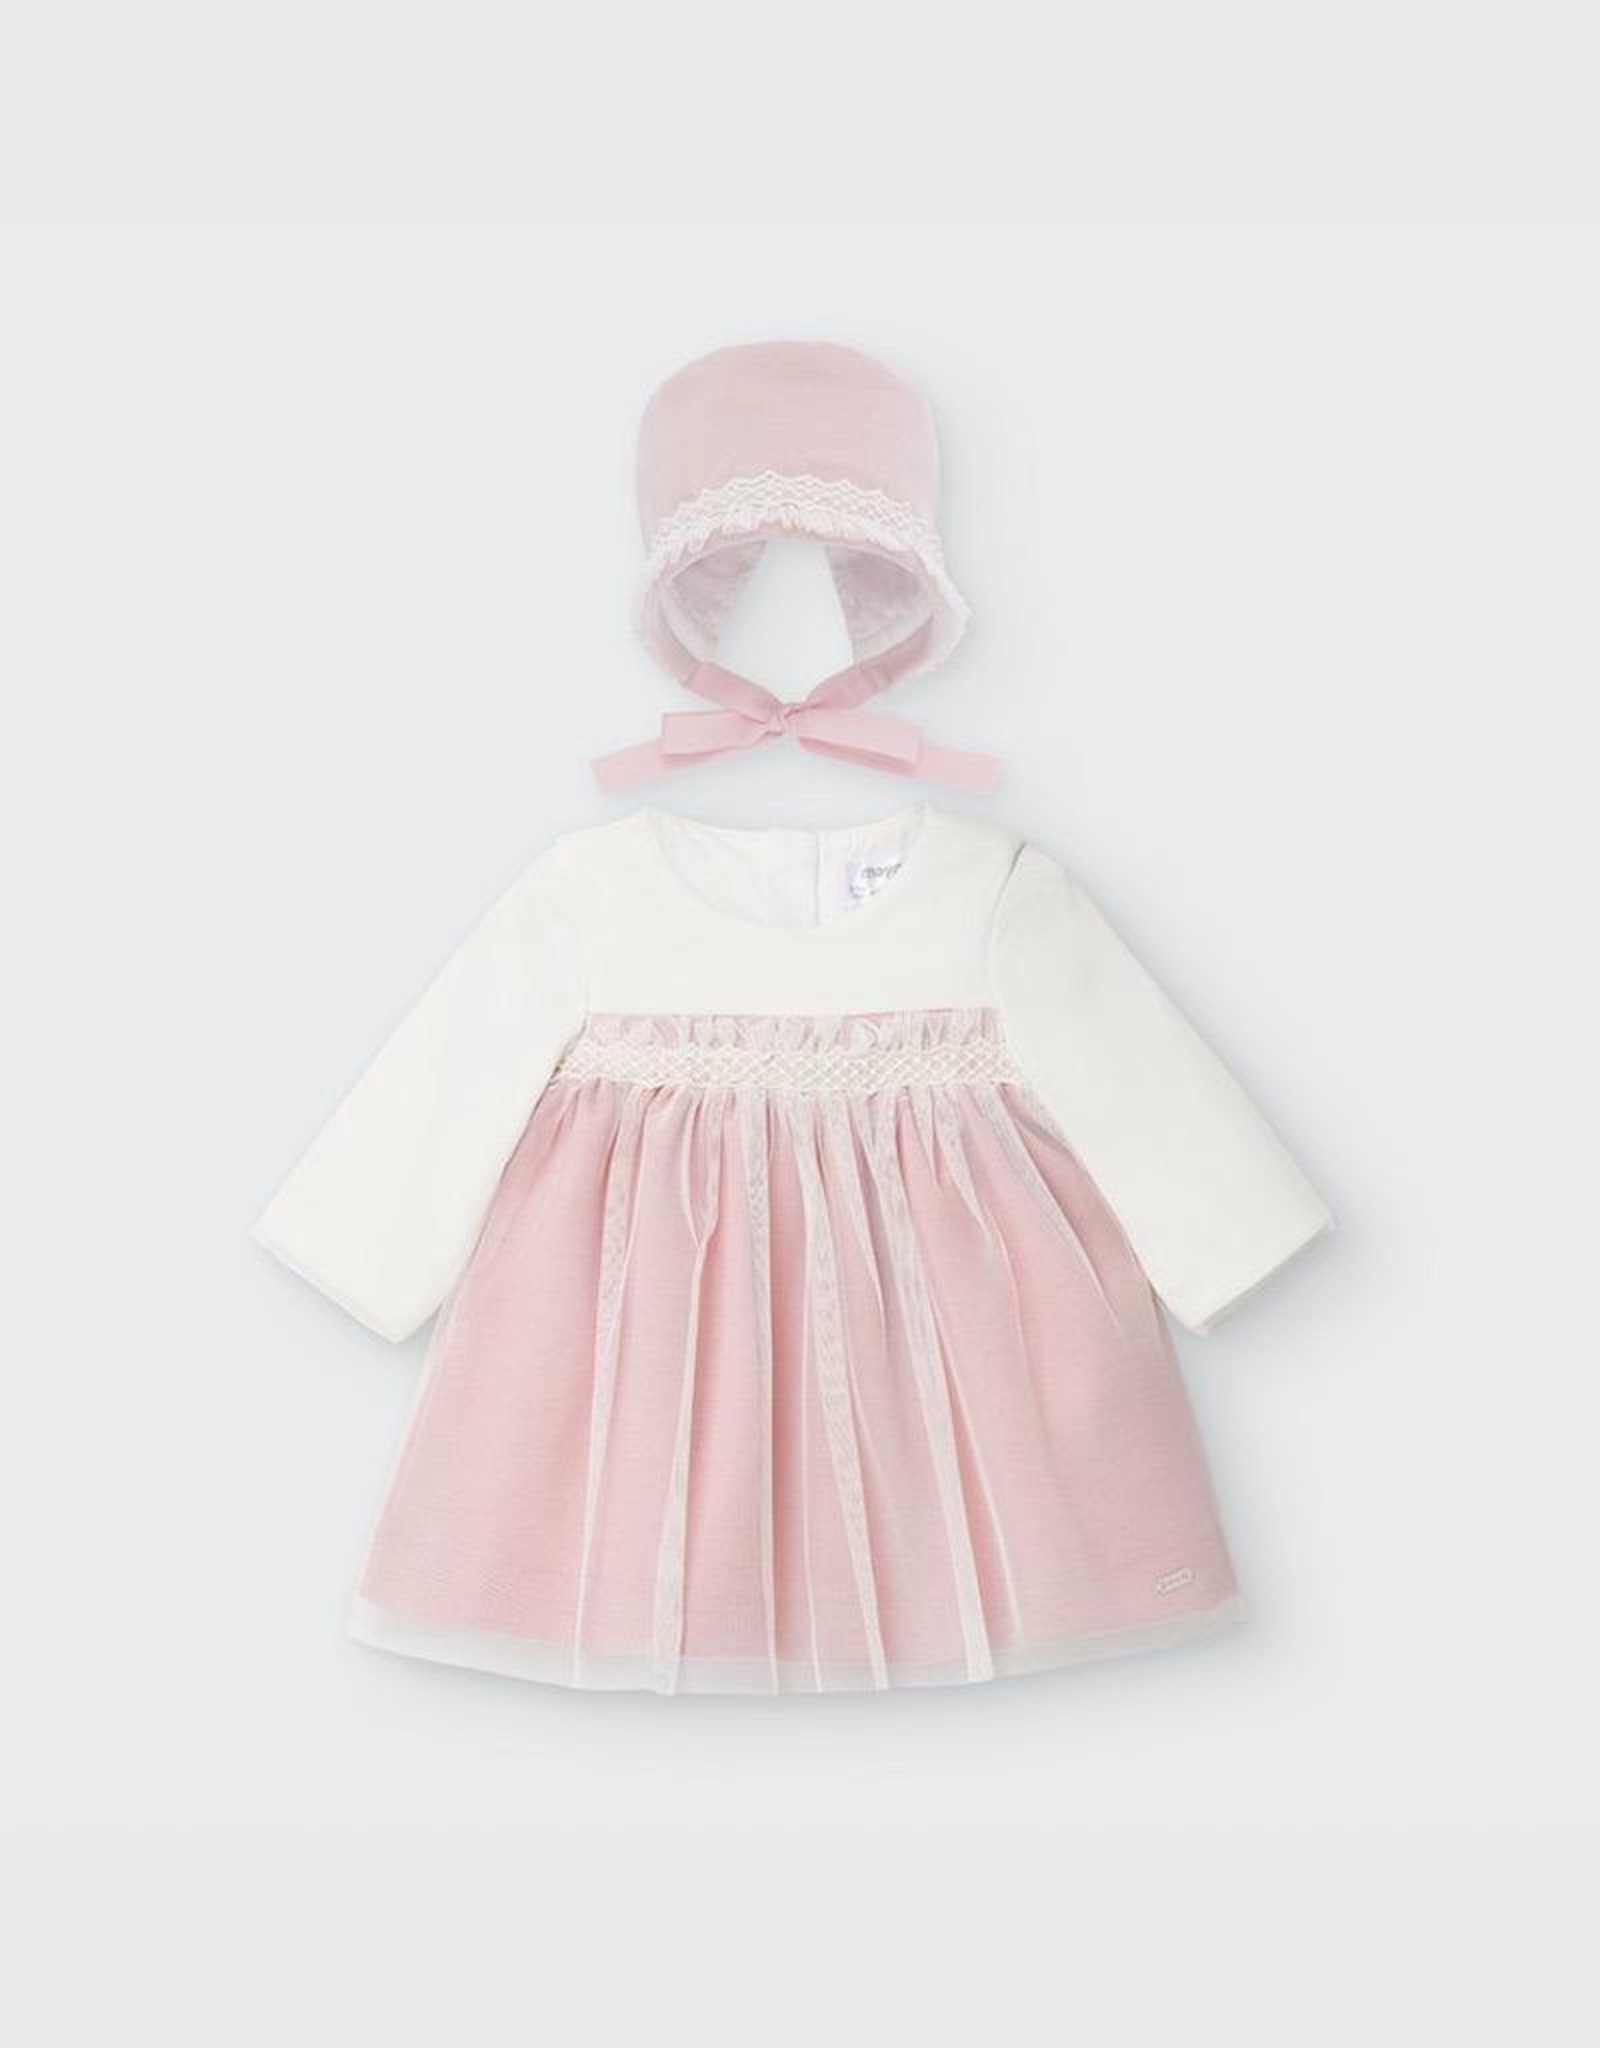 Mayoral Ceremony Dress Baby Girl Set in Candy